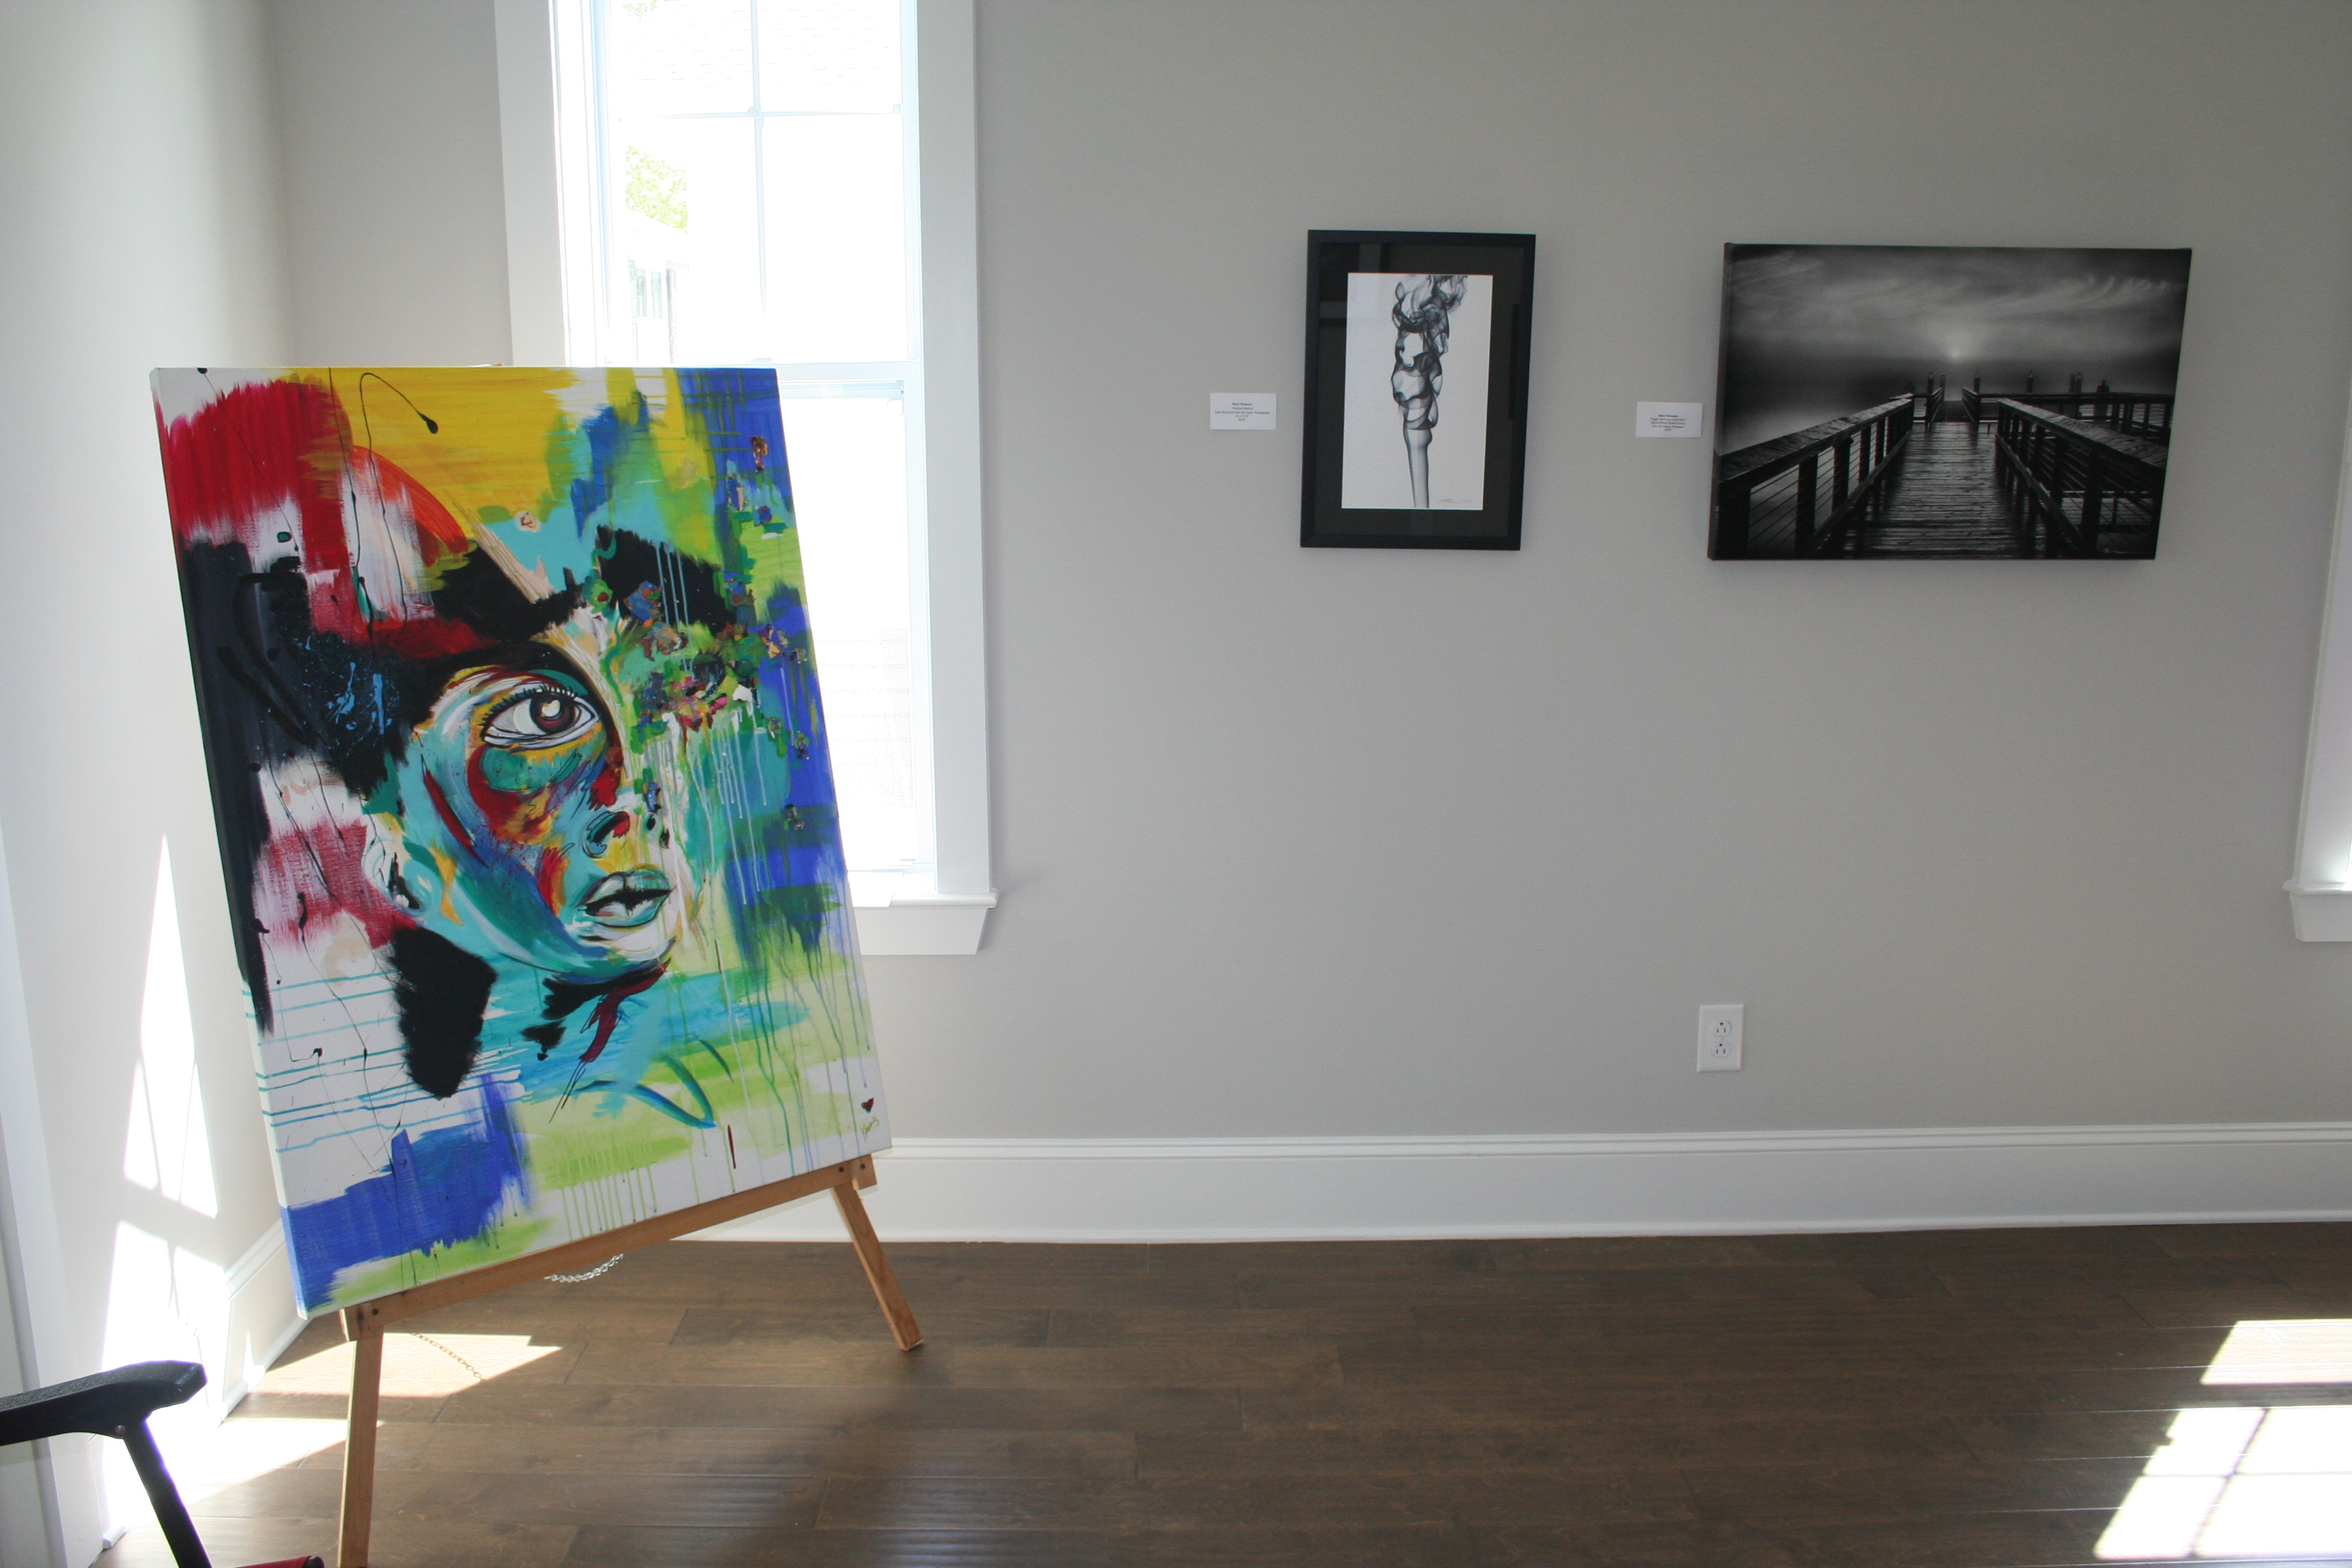 This piece, created by artist Kris Manning, was one of several on display and available for purchase.